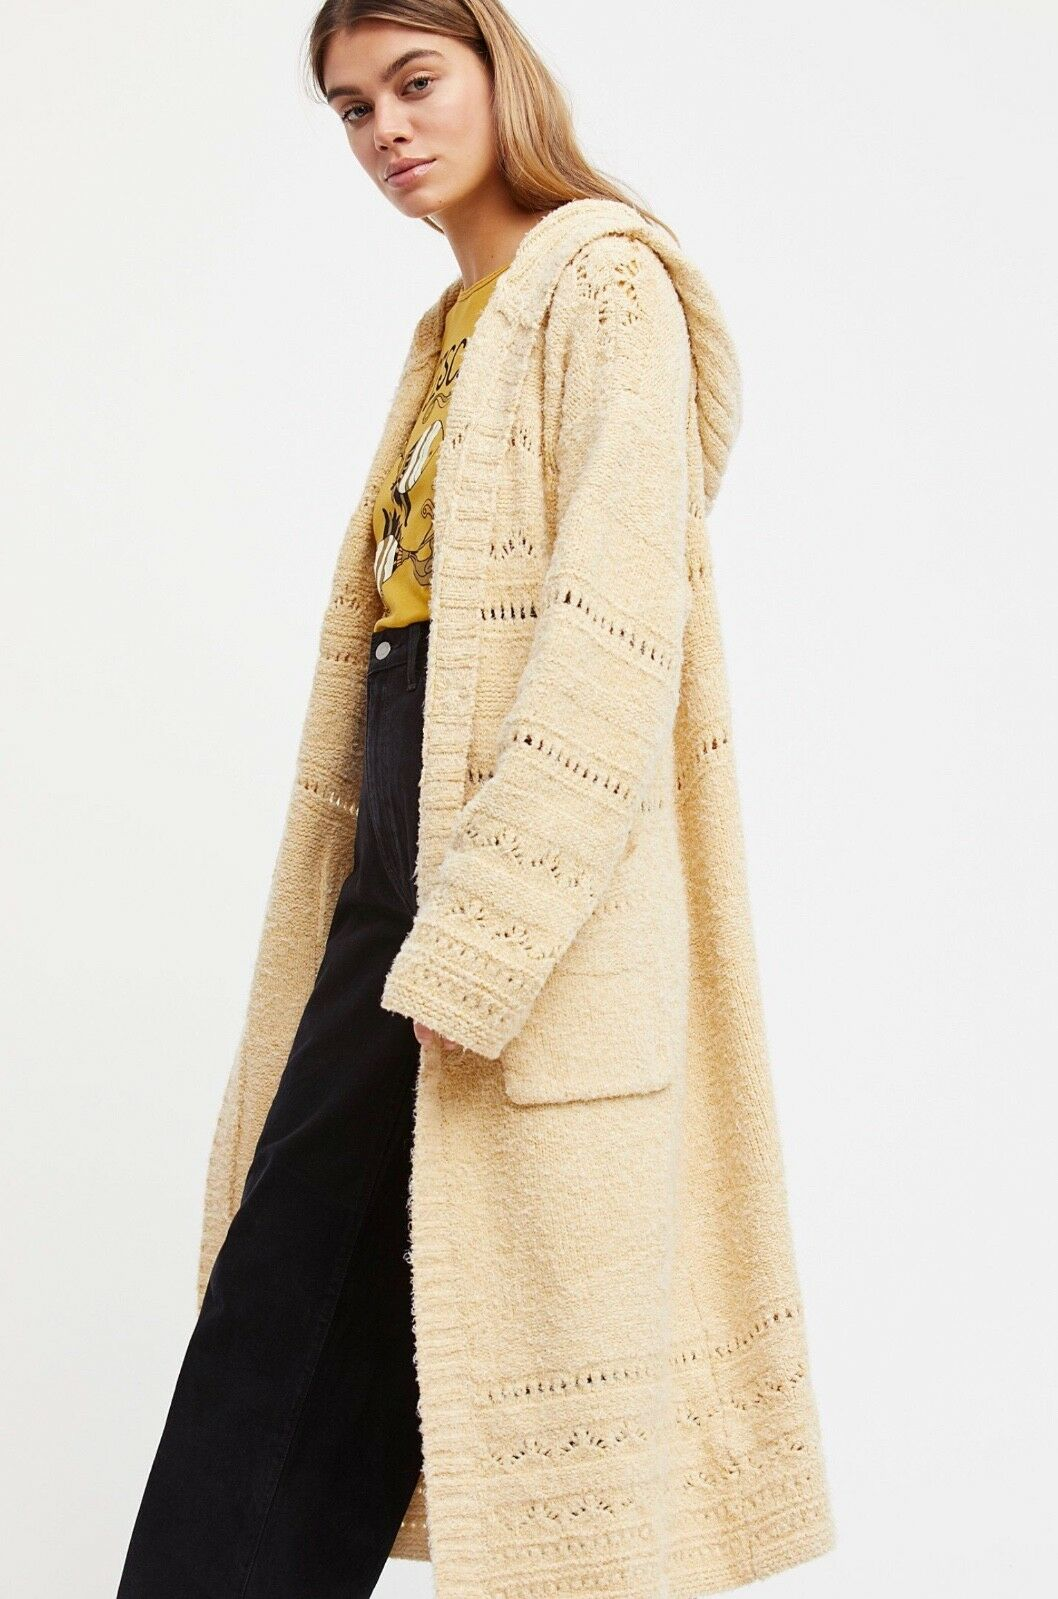 NEW  198 Free People Sand Dollar Cardigan Sweater Coat in Natural XS Oversized